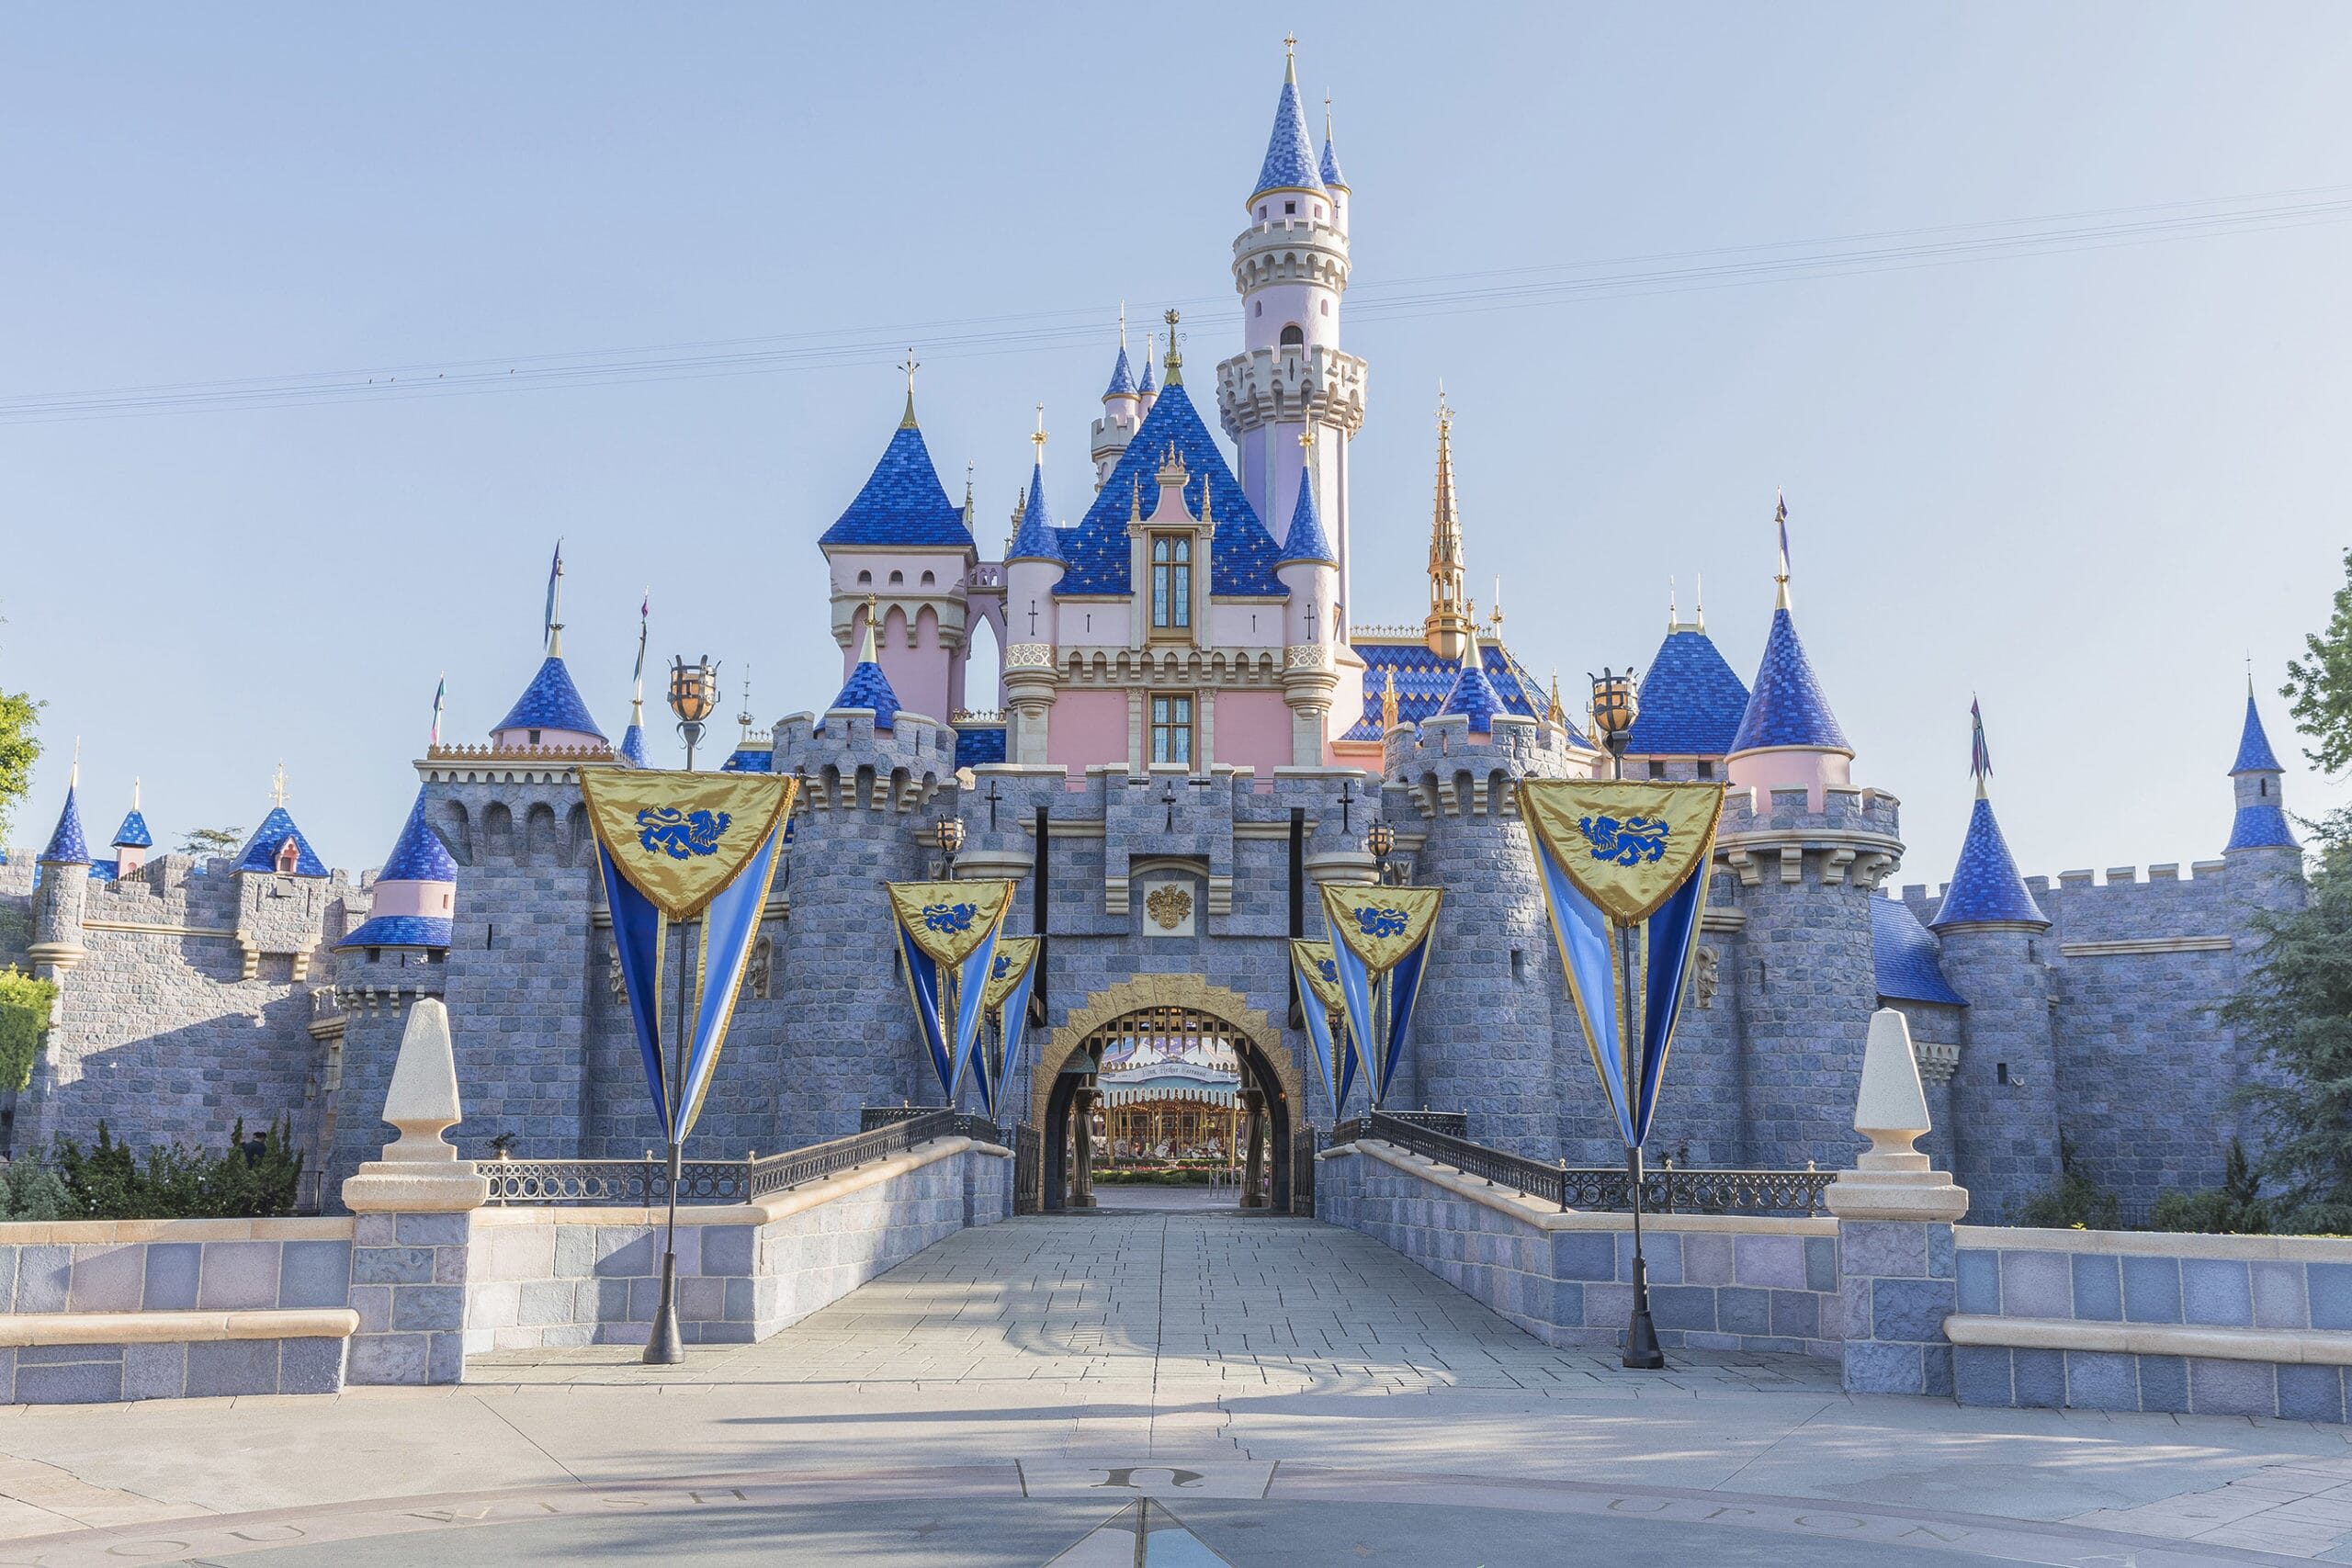 sleeping-beauty-castle-at-disneyland-park